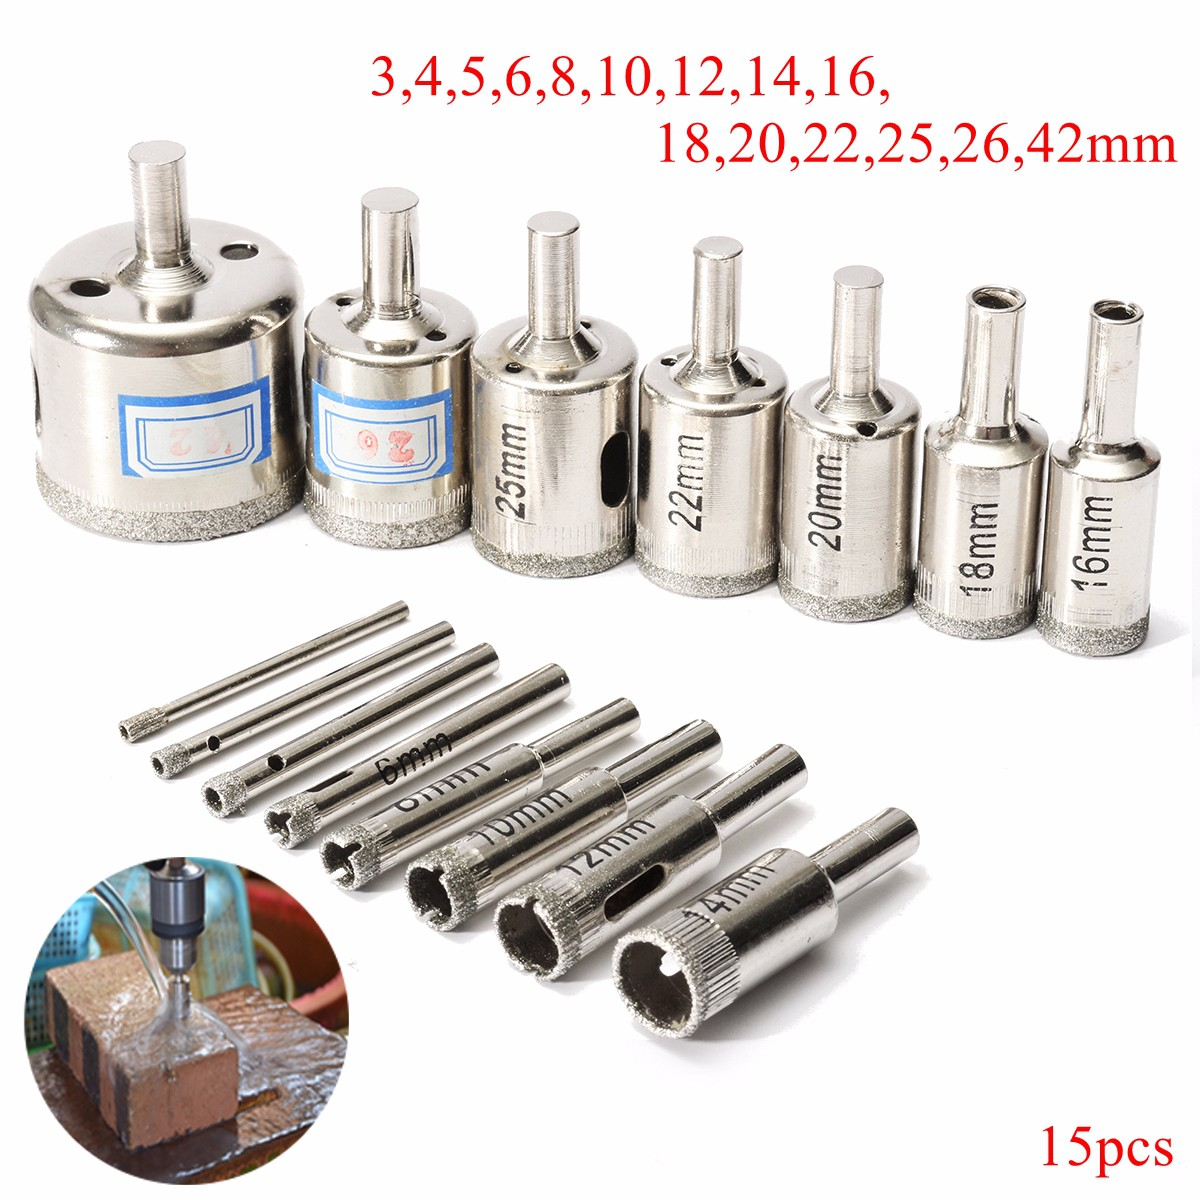 15pcs Hole Saw Set Marble Core Drill Bits 3mm-42mm Diamond Cutter Tool for Glass Marble Tile Ceramic Glass Cutting Drilling туника svesta туники с длинным рукавом